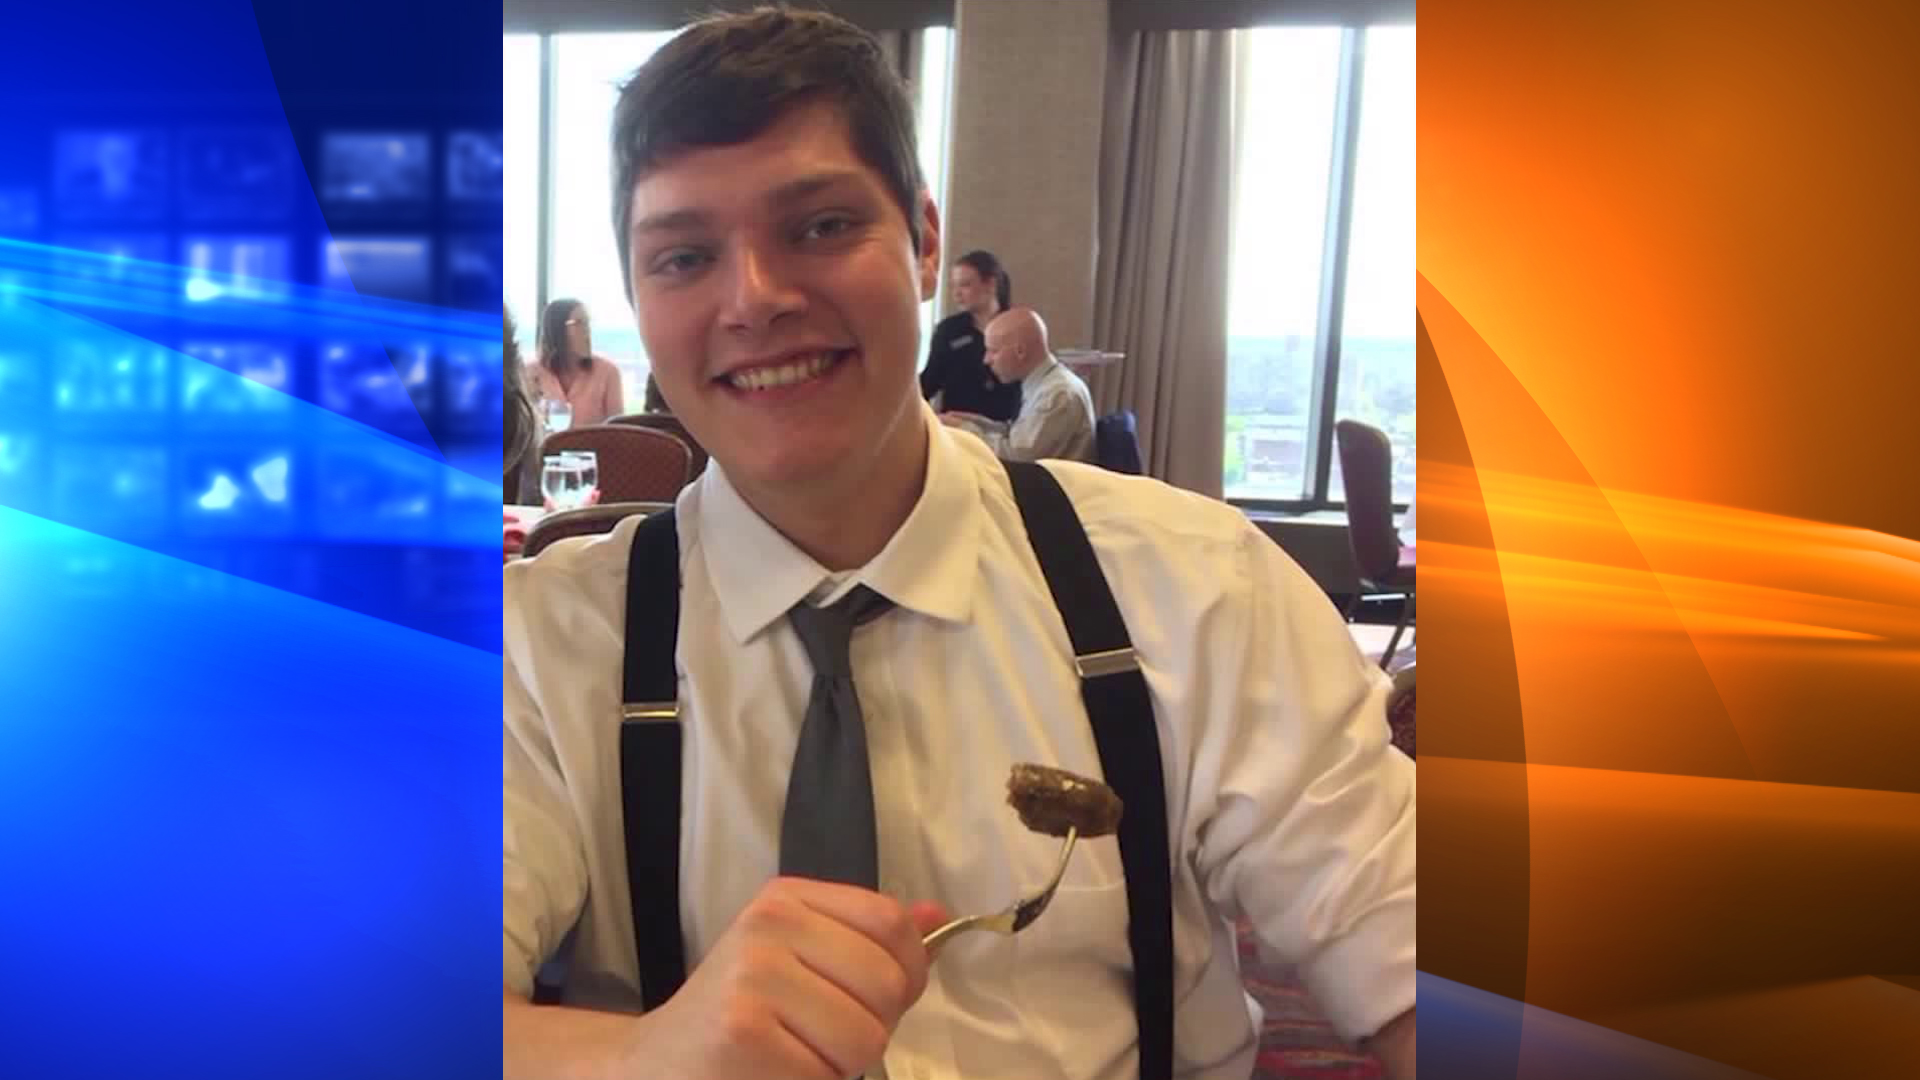 Connor Betts, 24, pictured in an undated photo. (Credit: CNN)